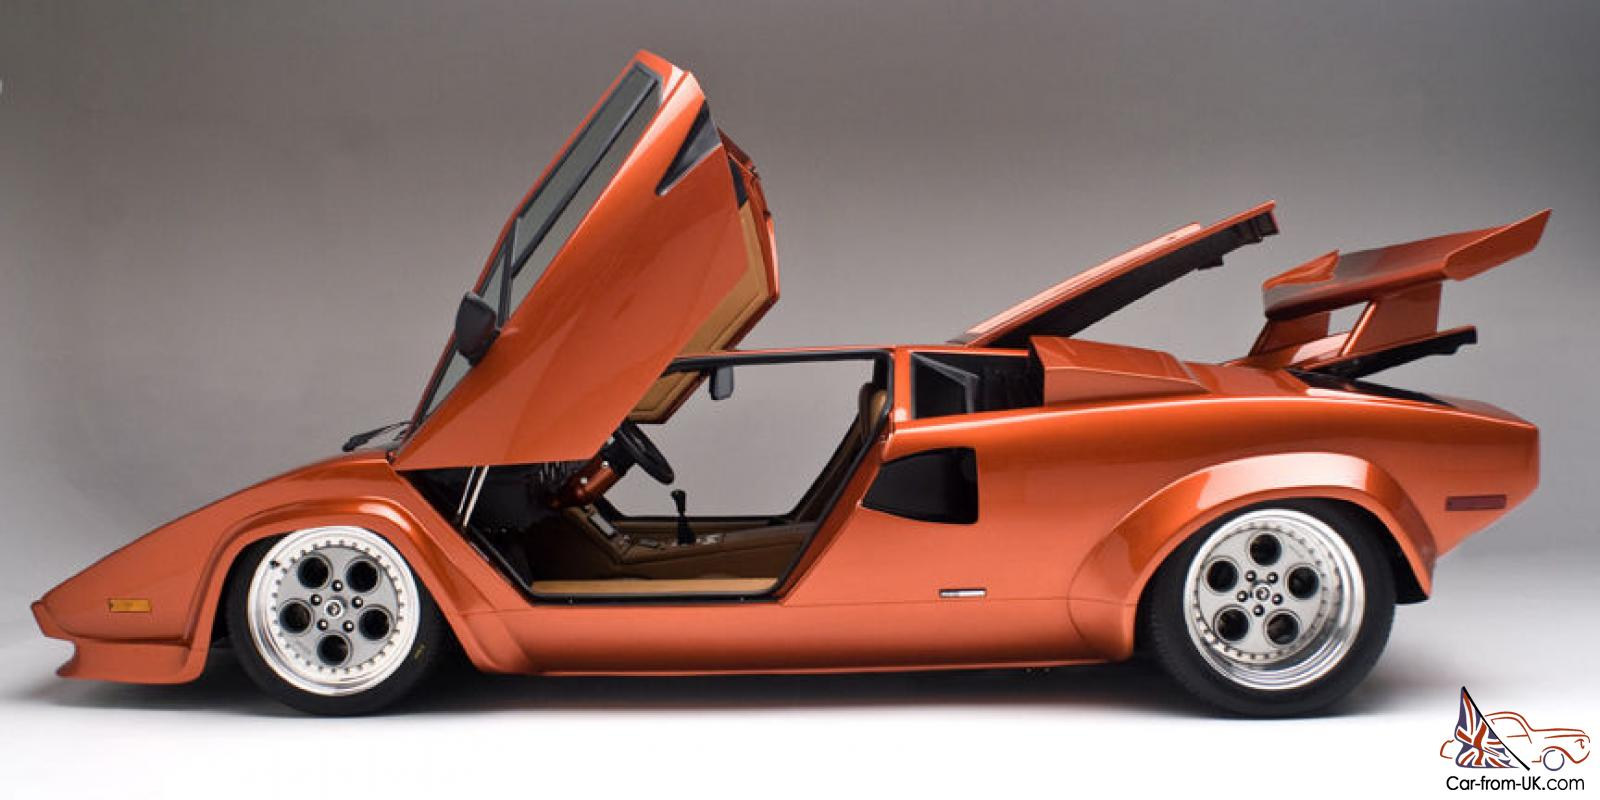 Replica Kit Makes Lamborghini Countach